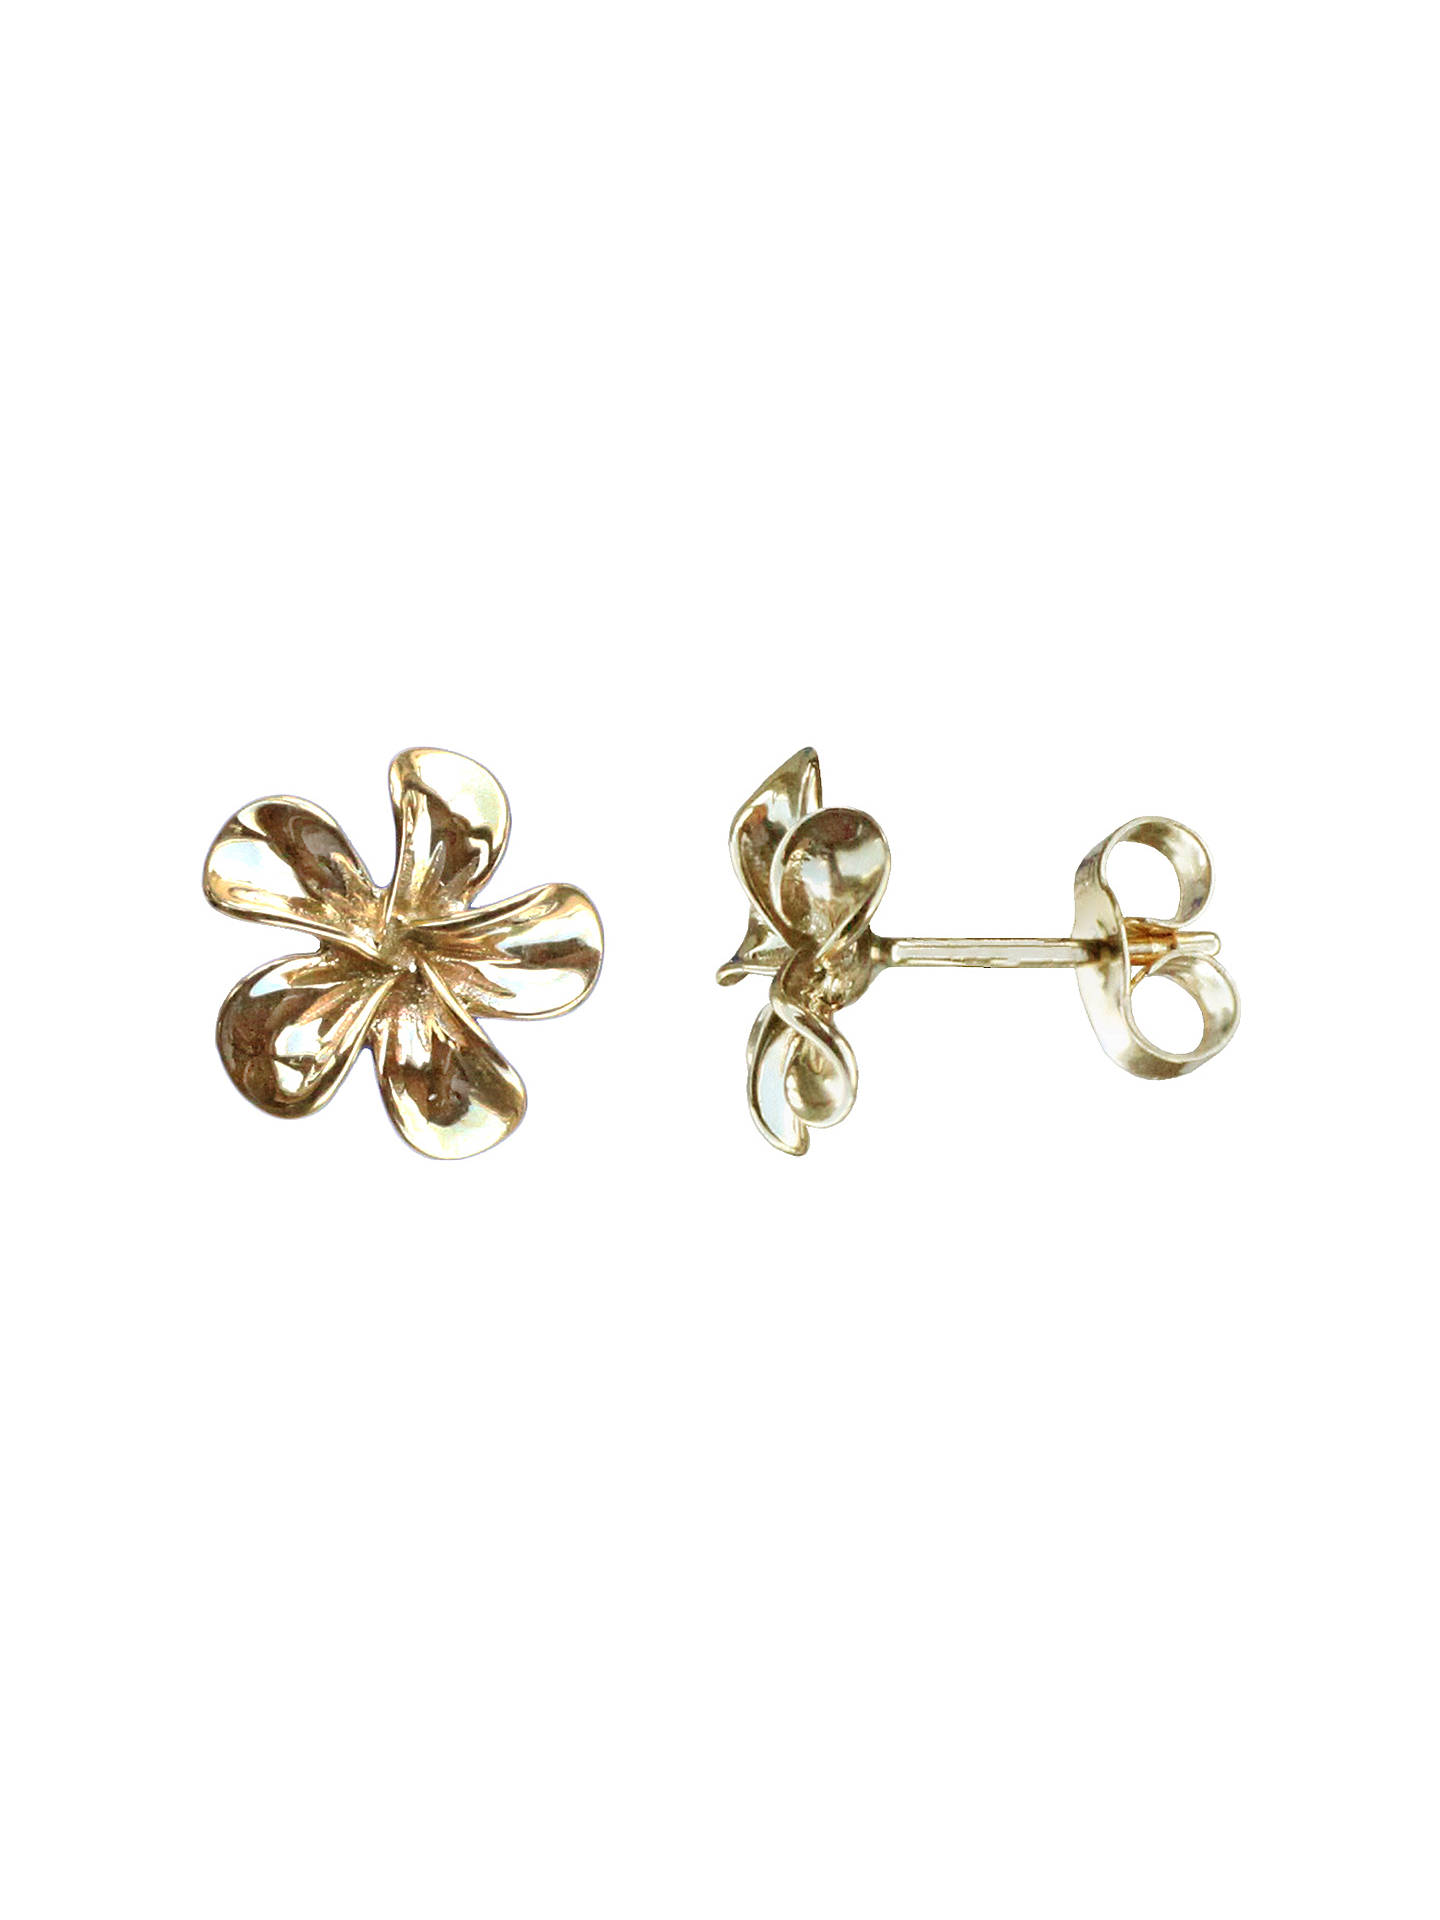 86d9ad5a1 Buy Nina B 9ct Yellow Gold Flower Stud Earrings, Gold Online at  johnlewis.com ...